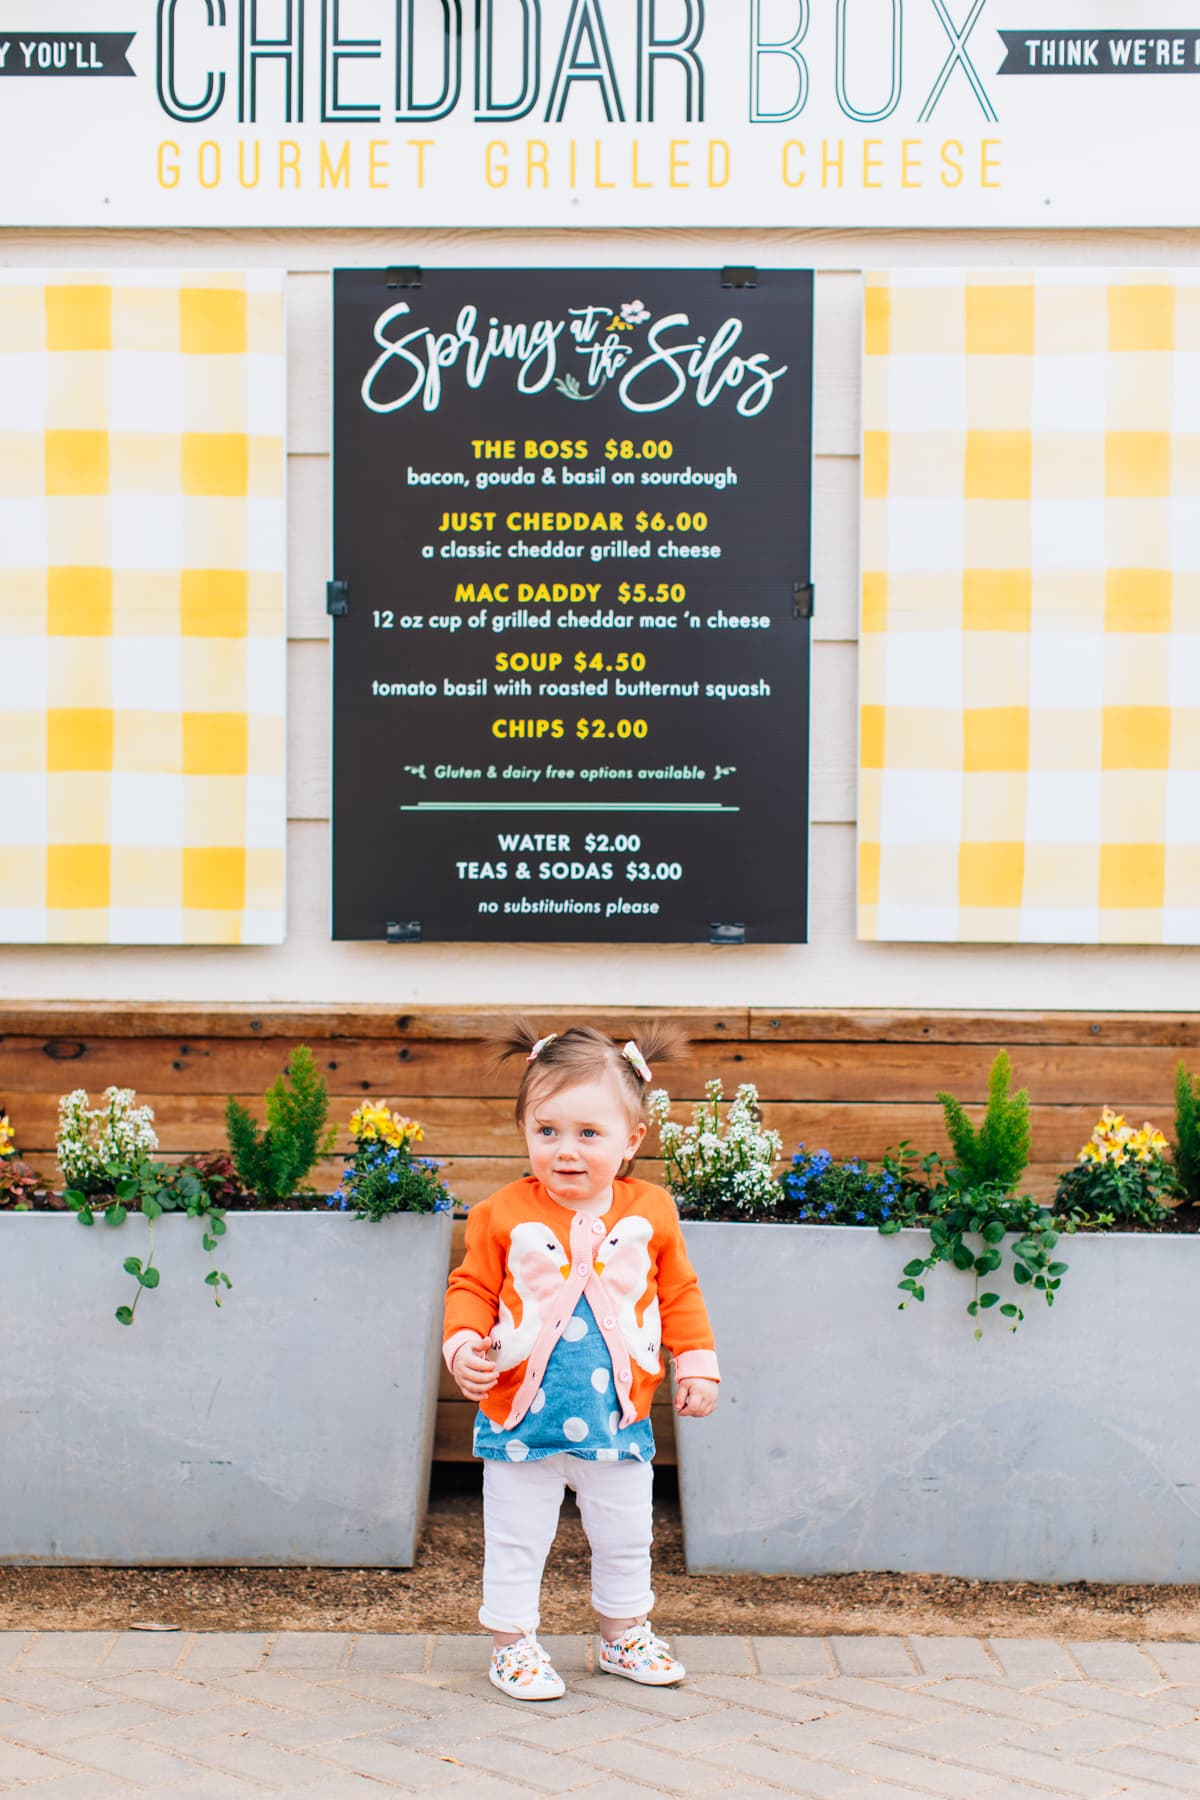 Gwen at Cheddar Box food truck at the Silos by top Houston lifestyle blogger Ashley Rose of Sugar & Cloth